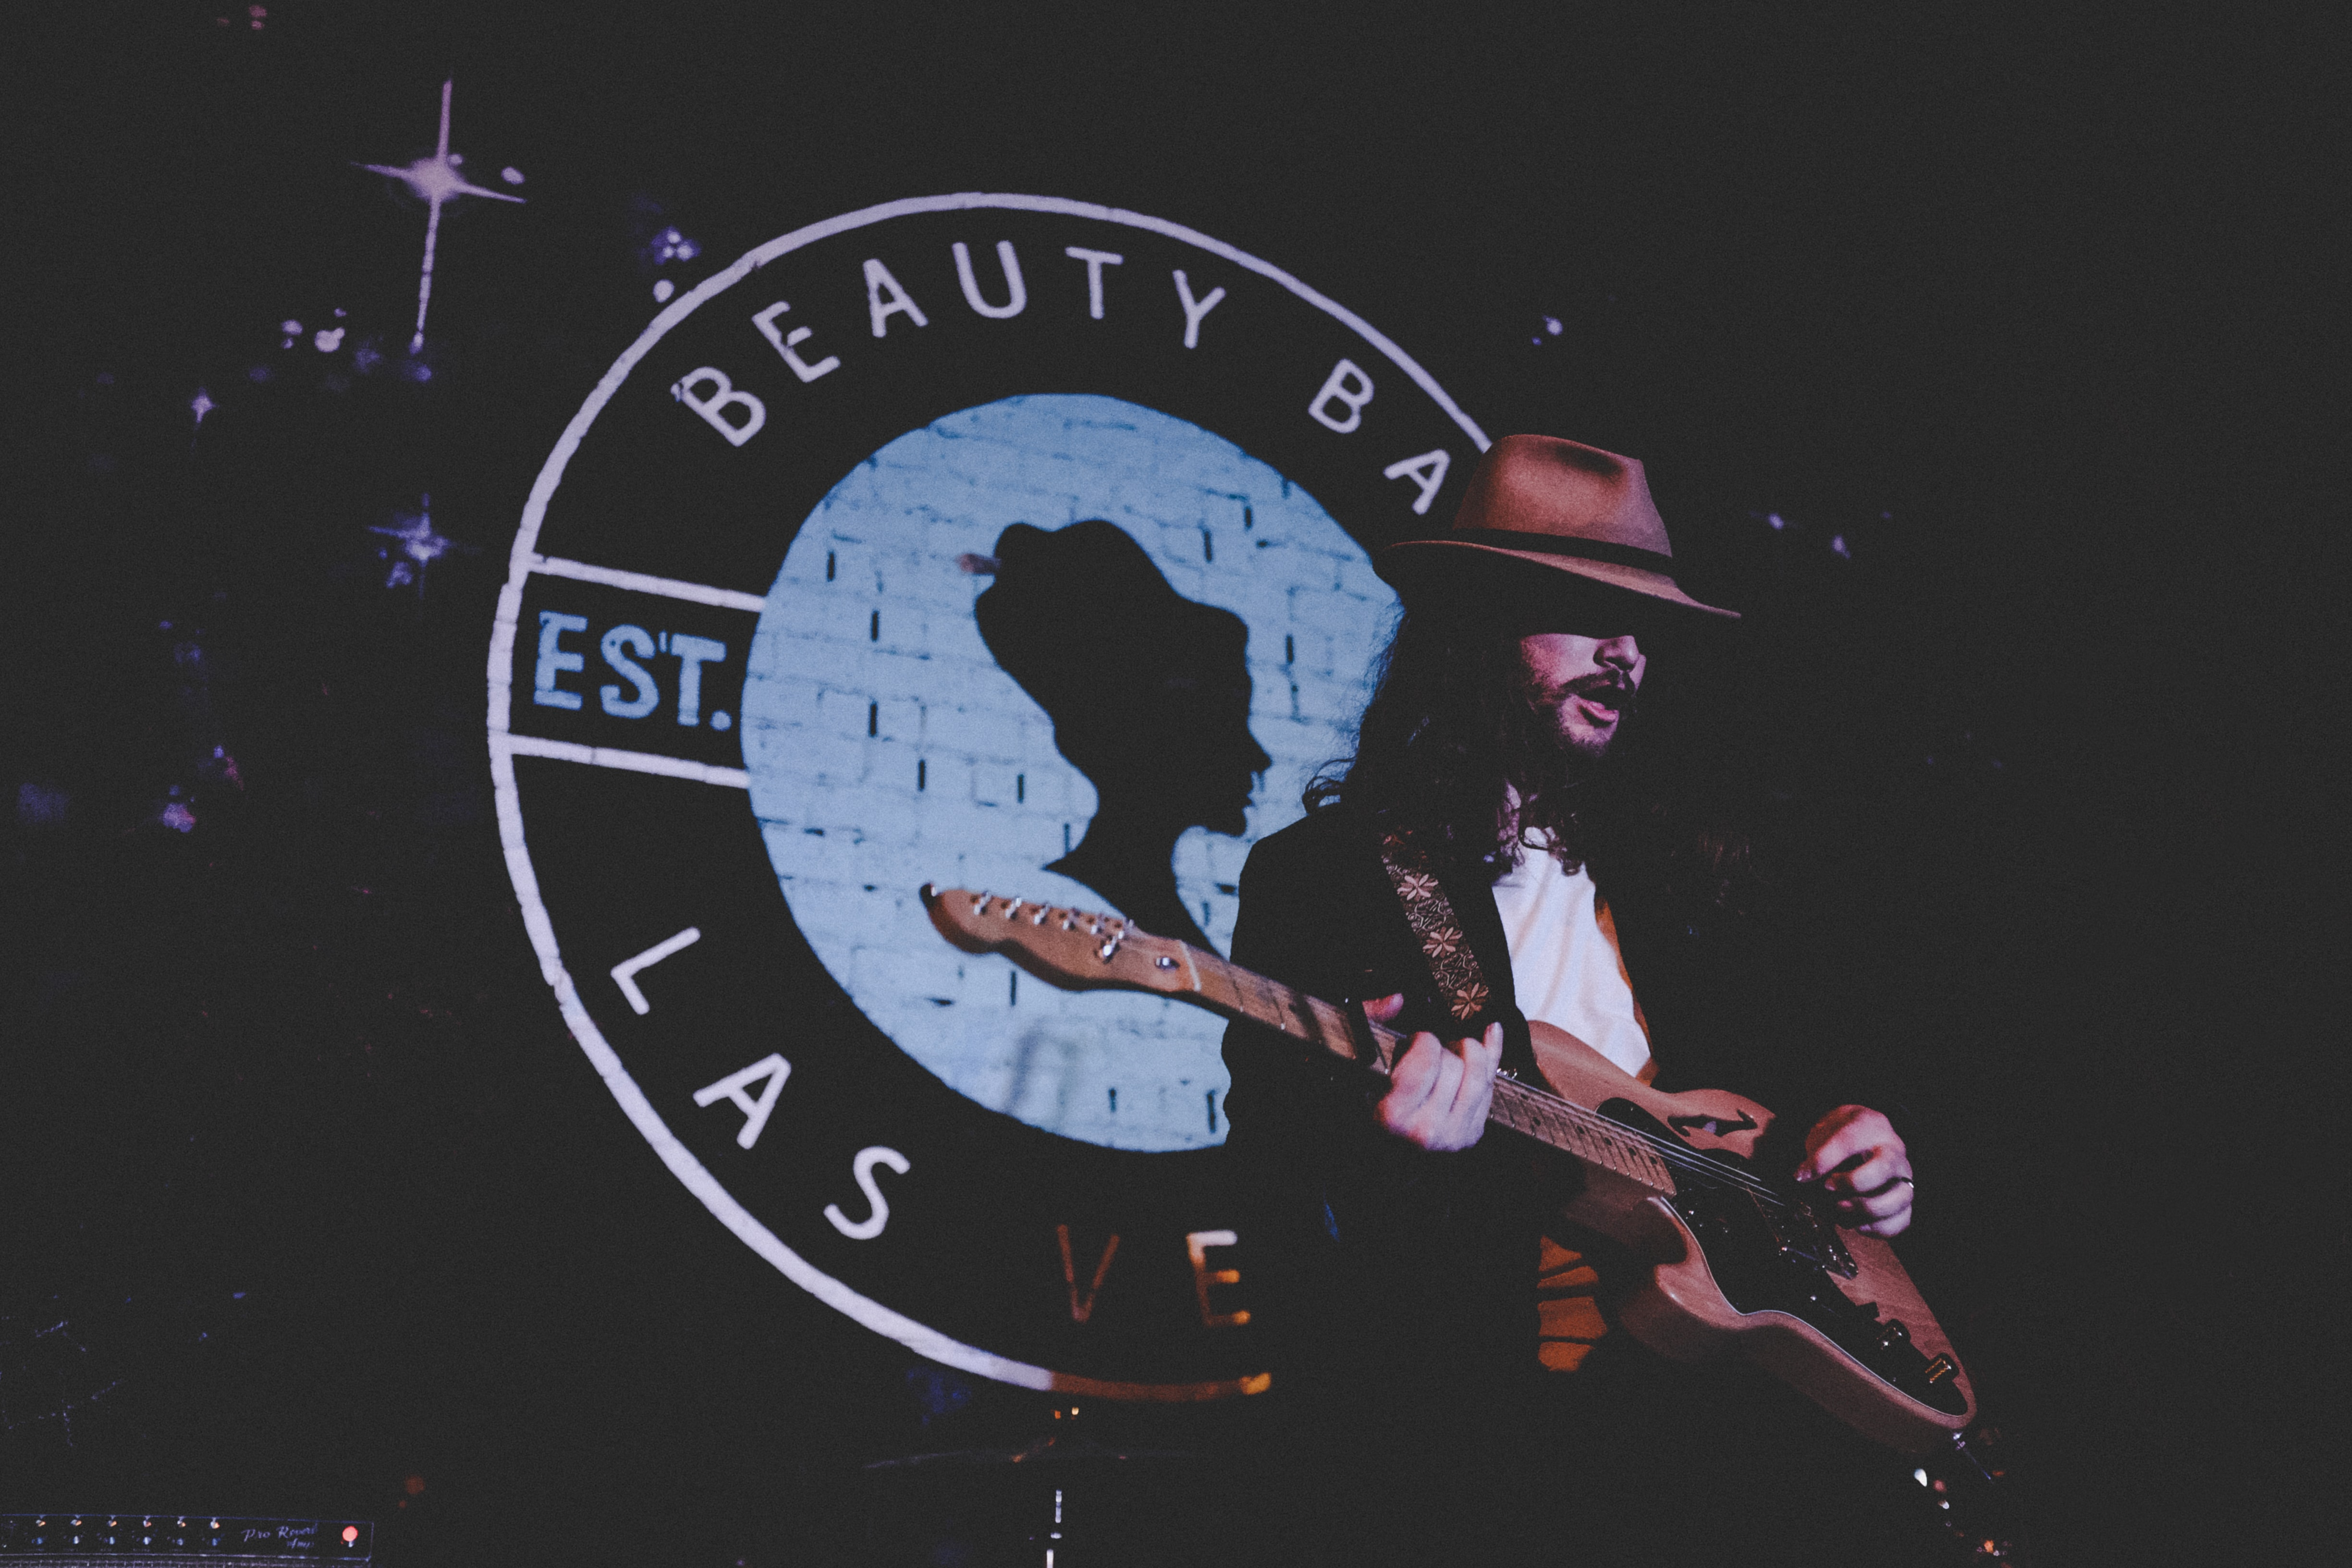 A flamboyant man playing a guitar in front of a Beauty Bar Las Vegas logo